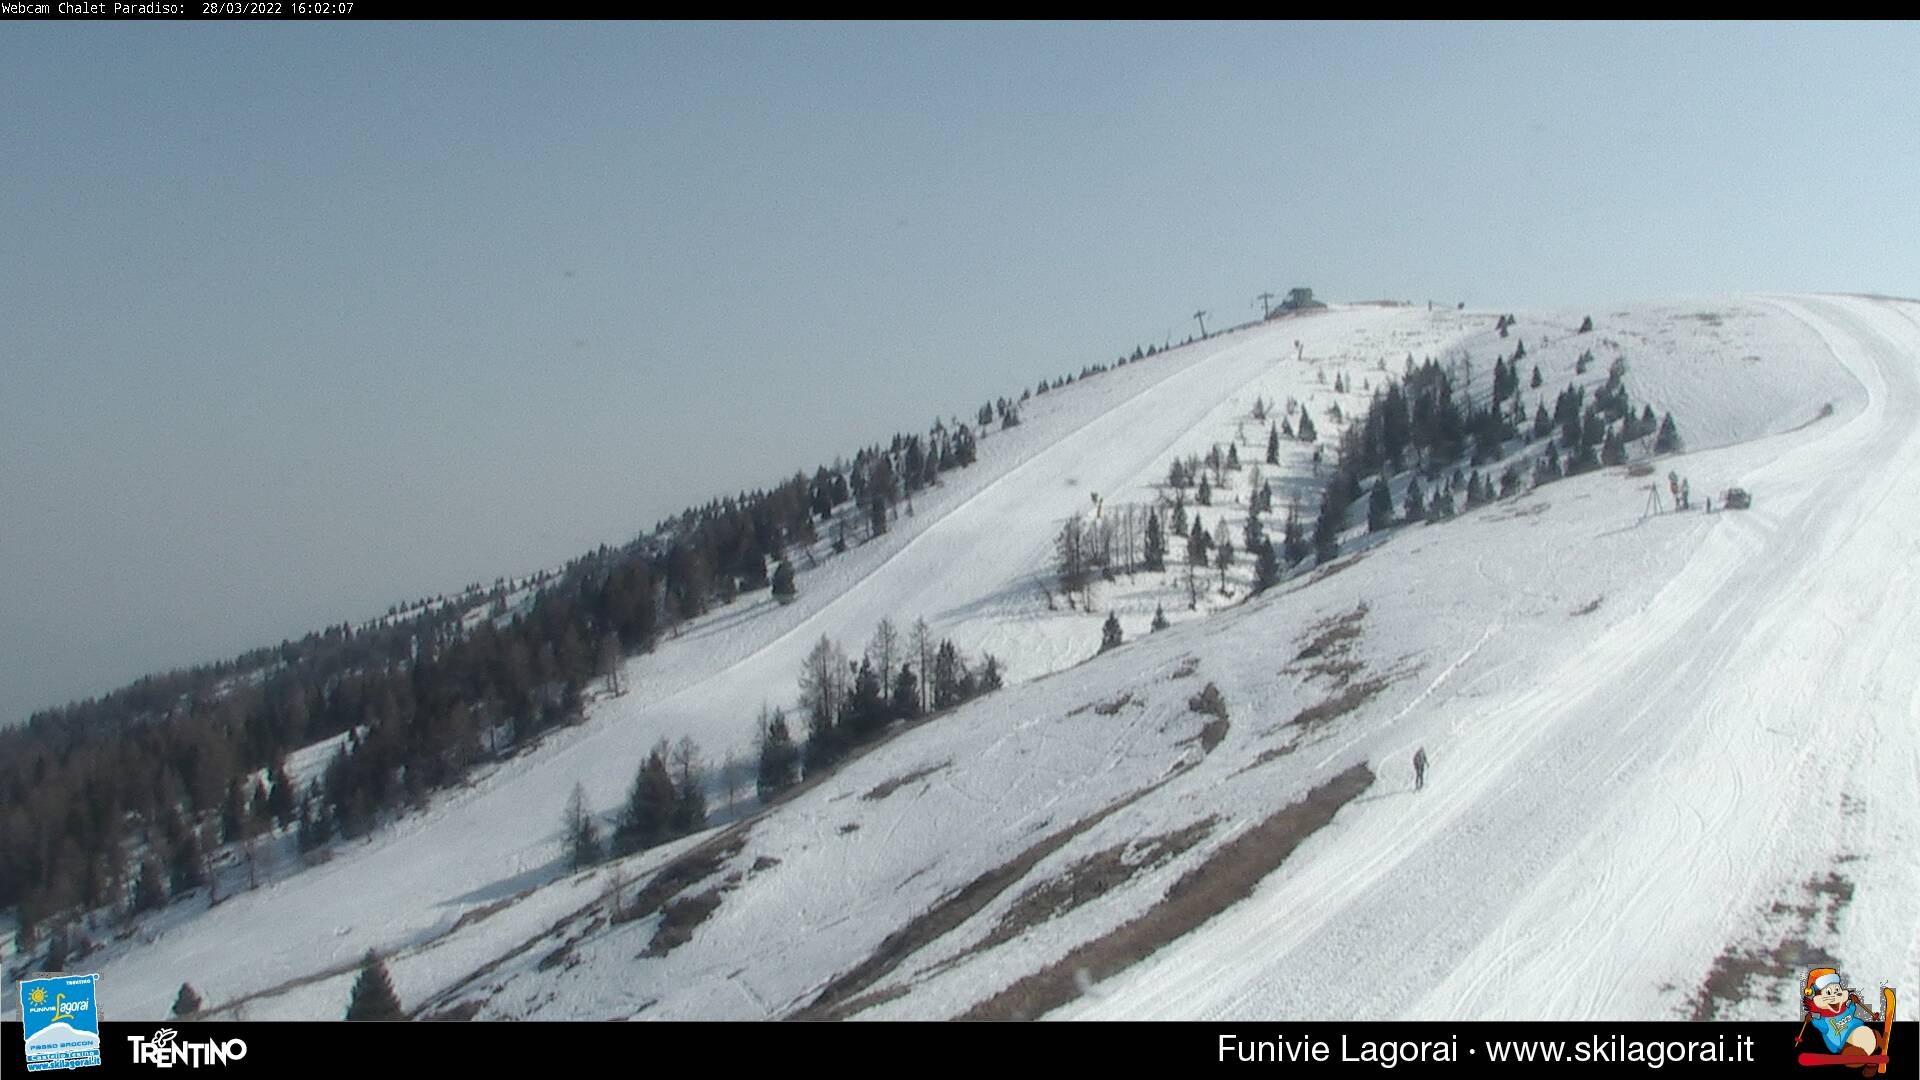 Webcam Chalet Paradiso Tour 1